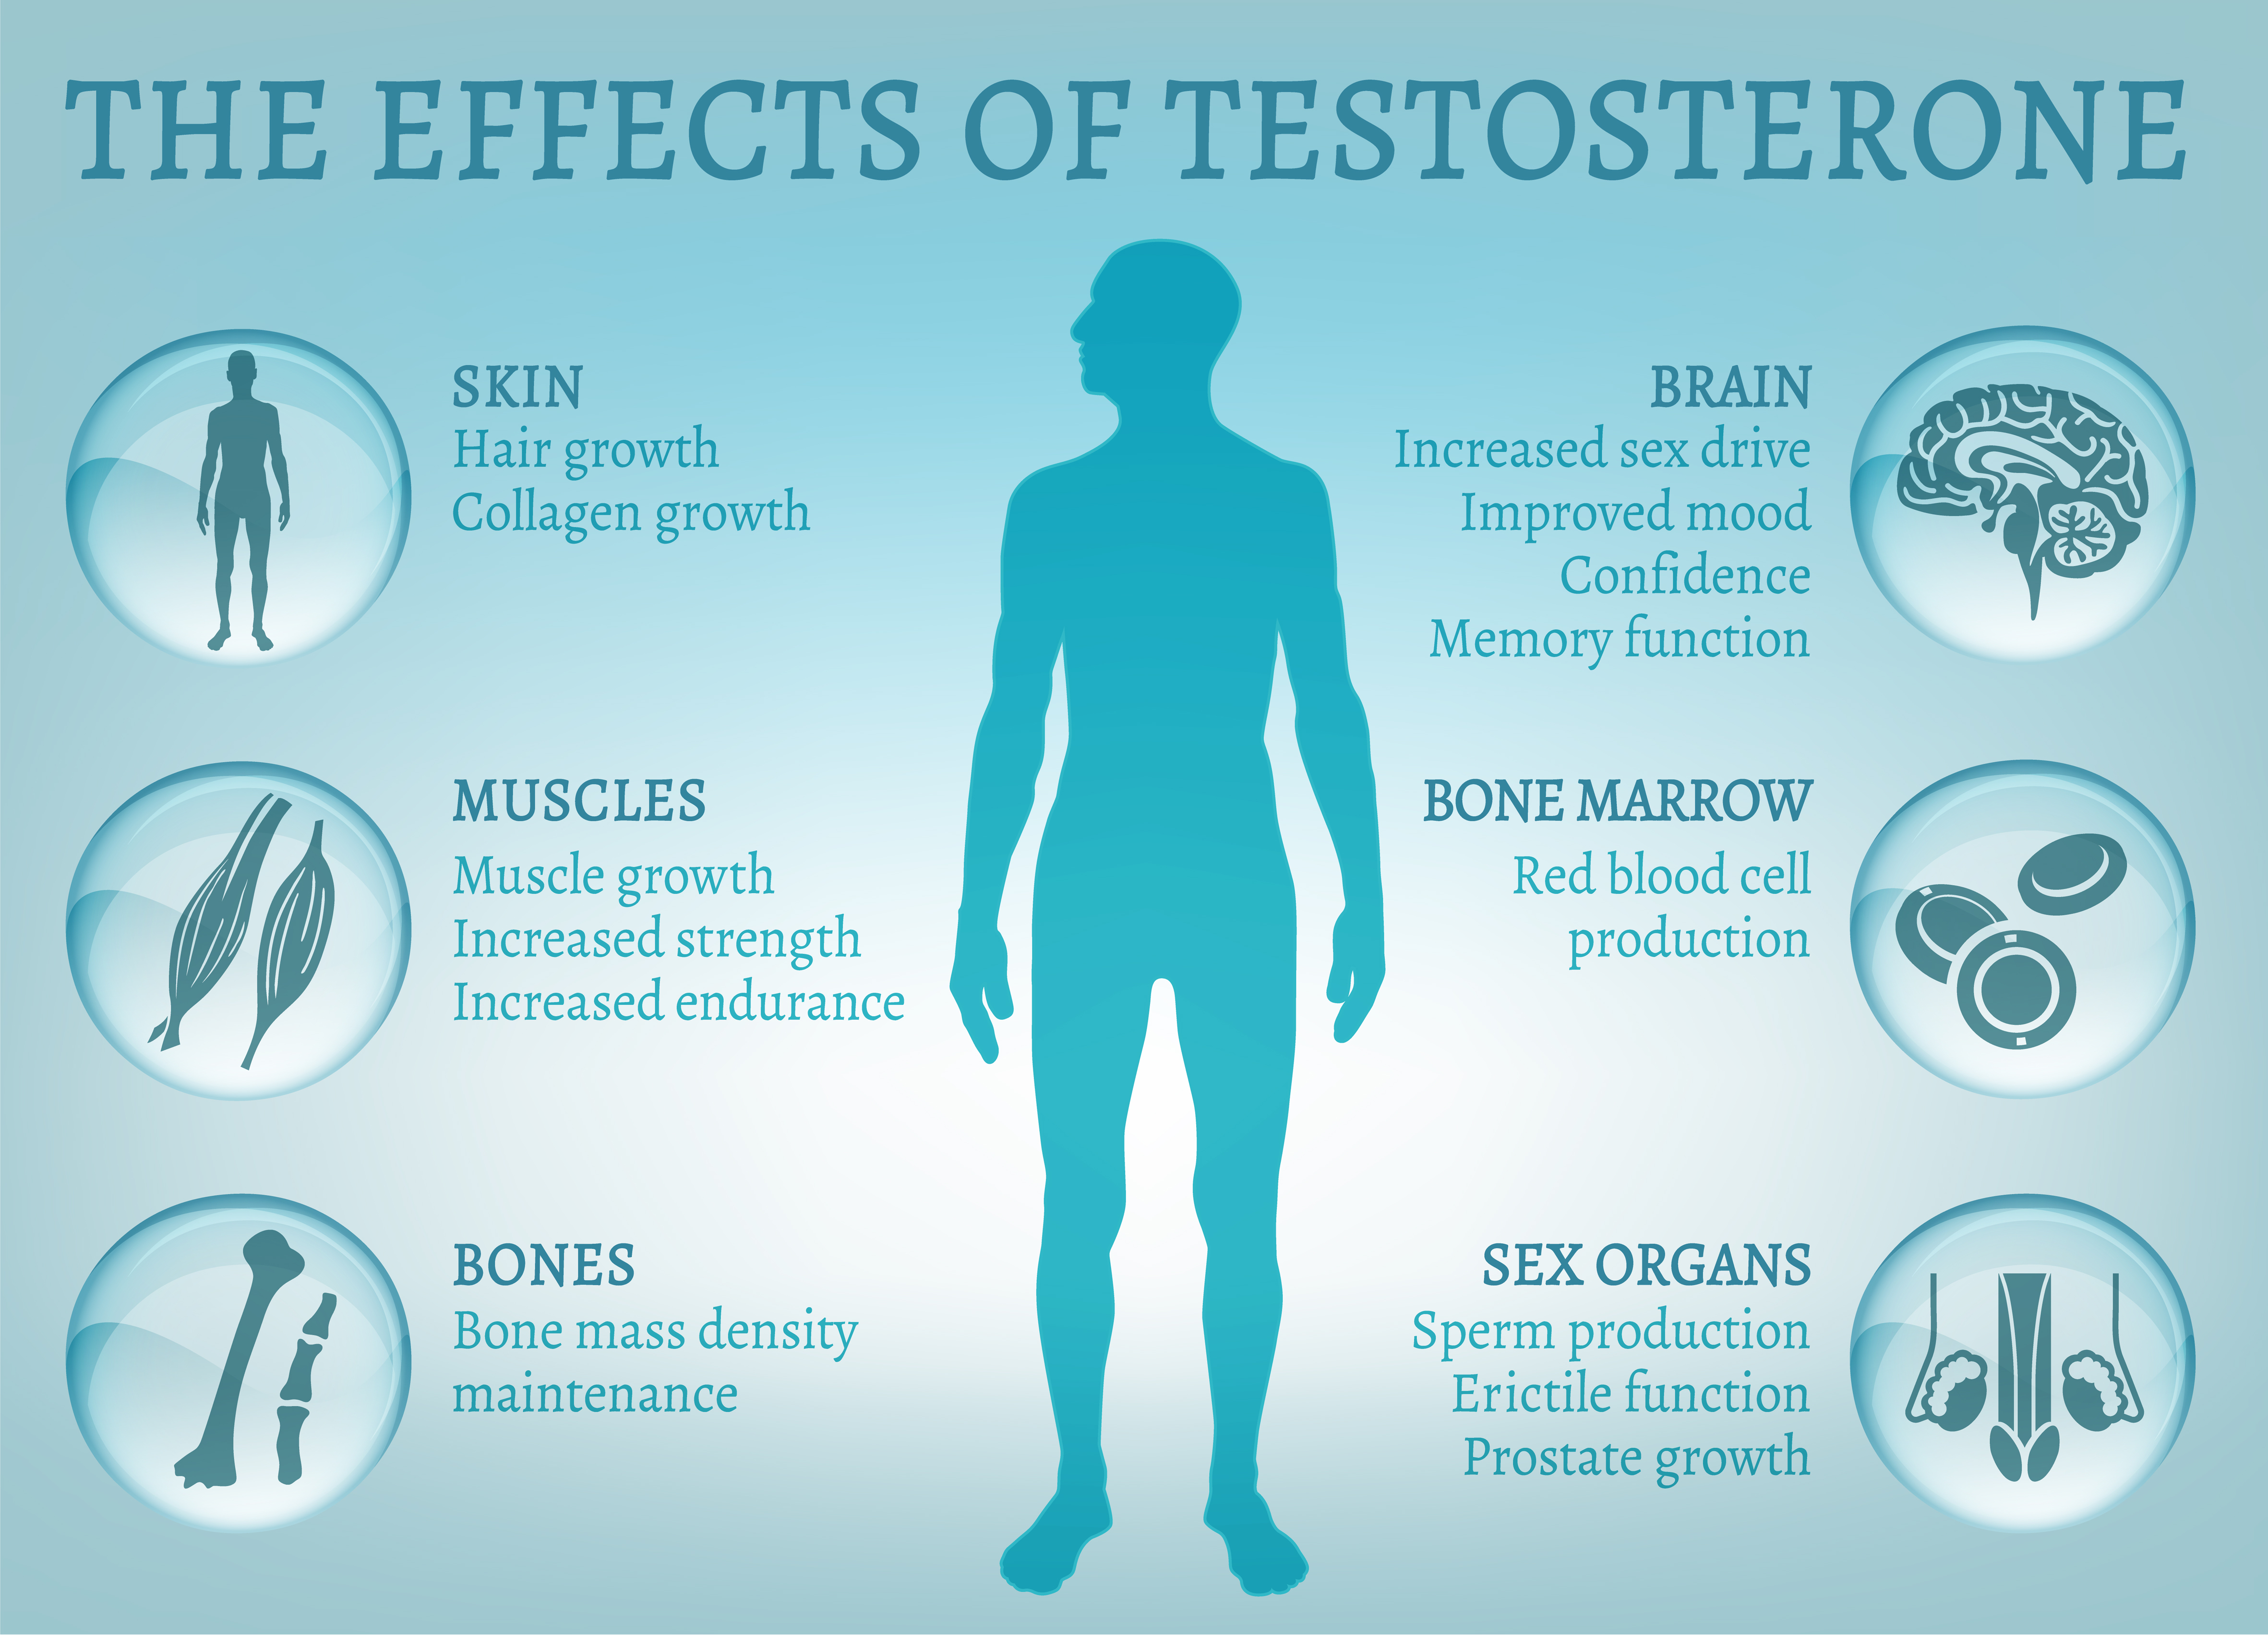 Benefits and actions of testosterone - infographic